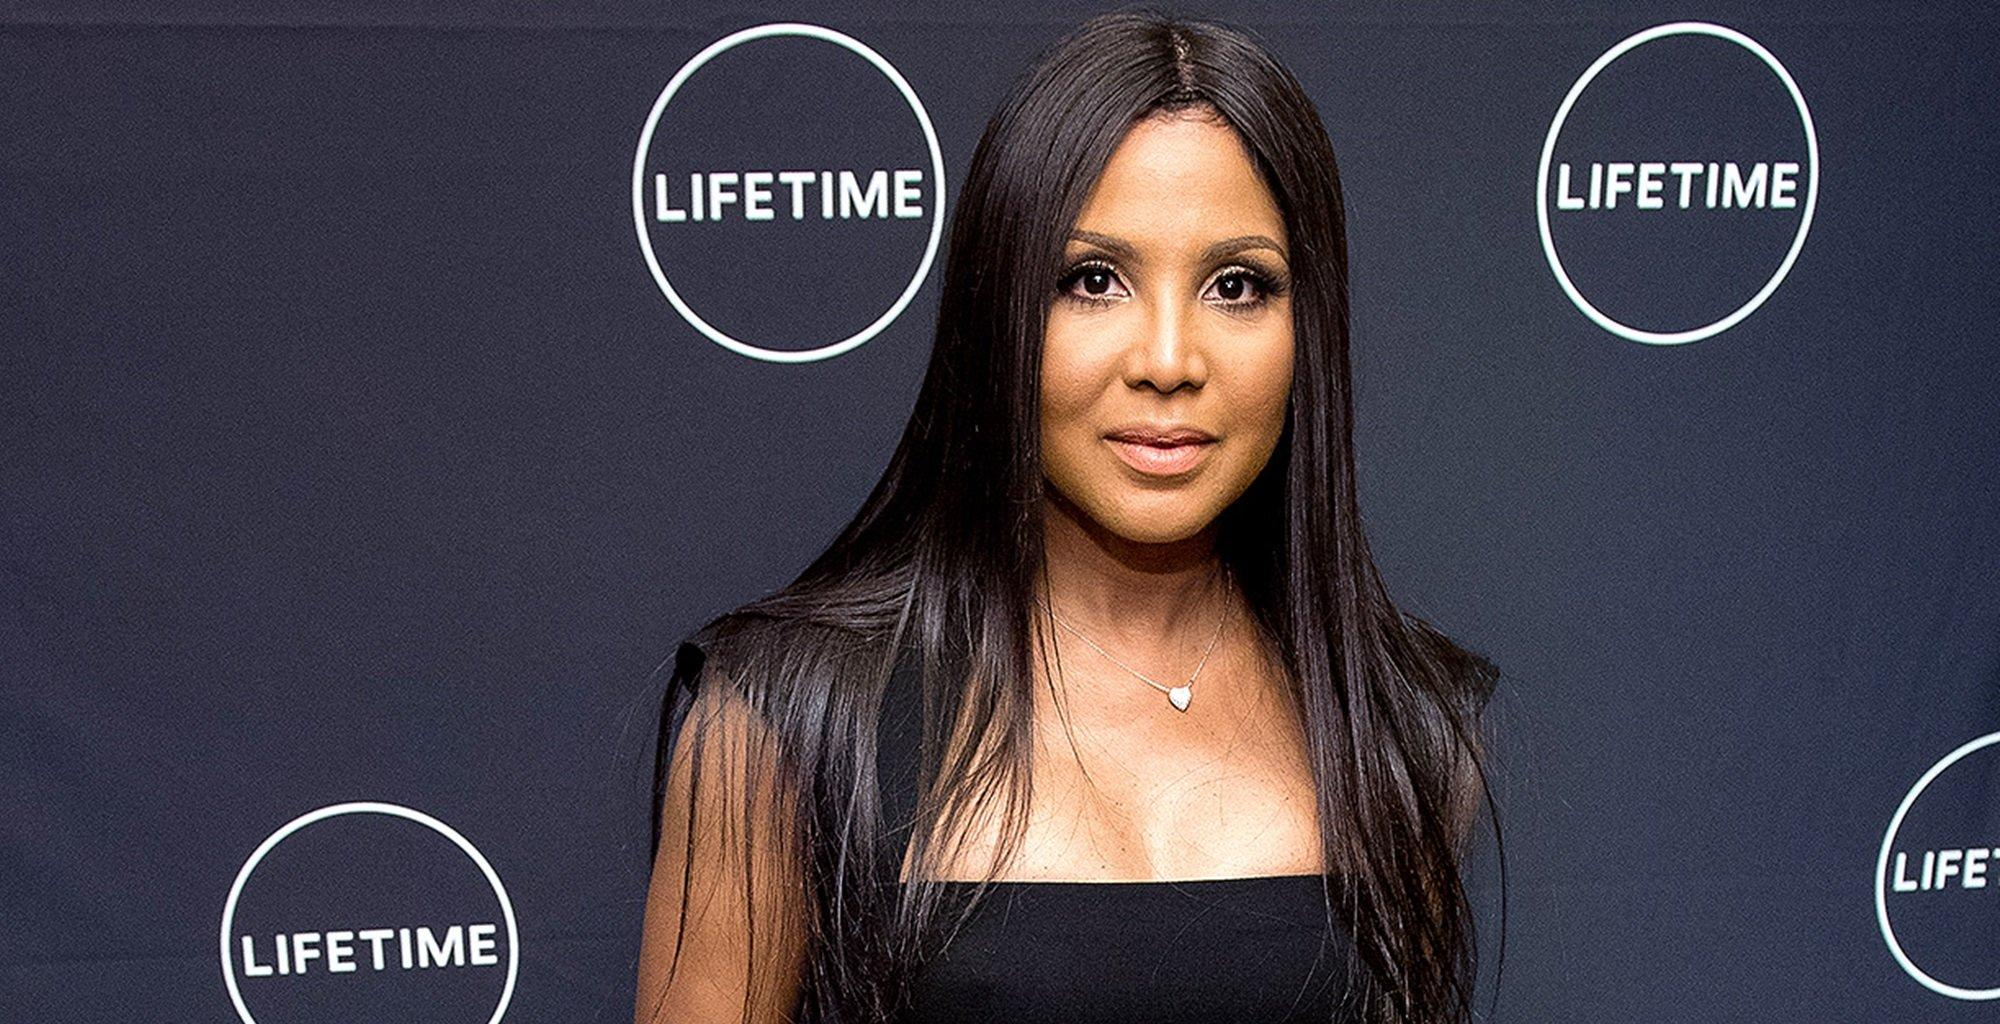 This Video Featuring Toni Braxton Putting A Vibrator On Her Face Has People Slamming Her